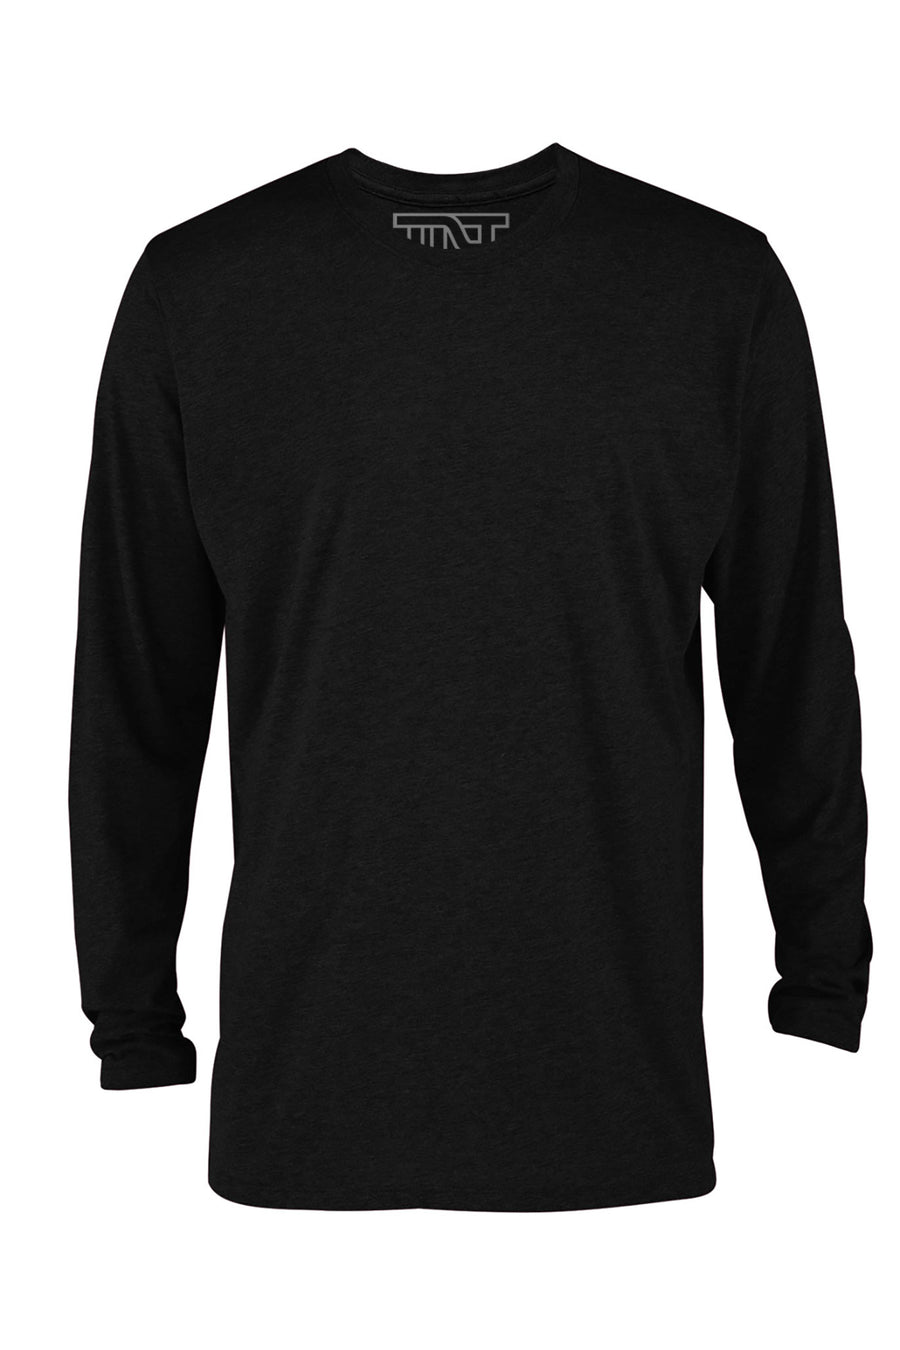 Jet Black Long Sleeve T-Shirt - Black